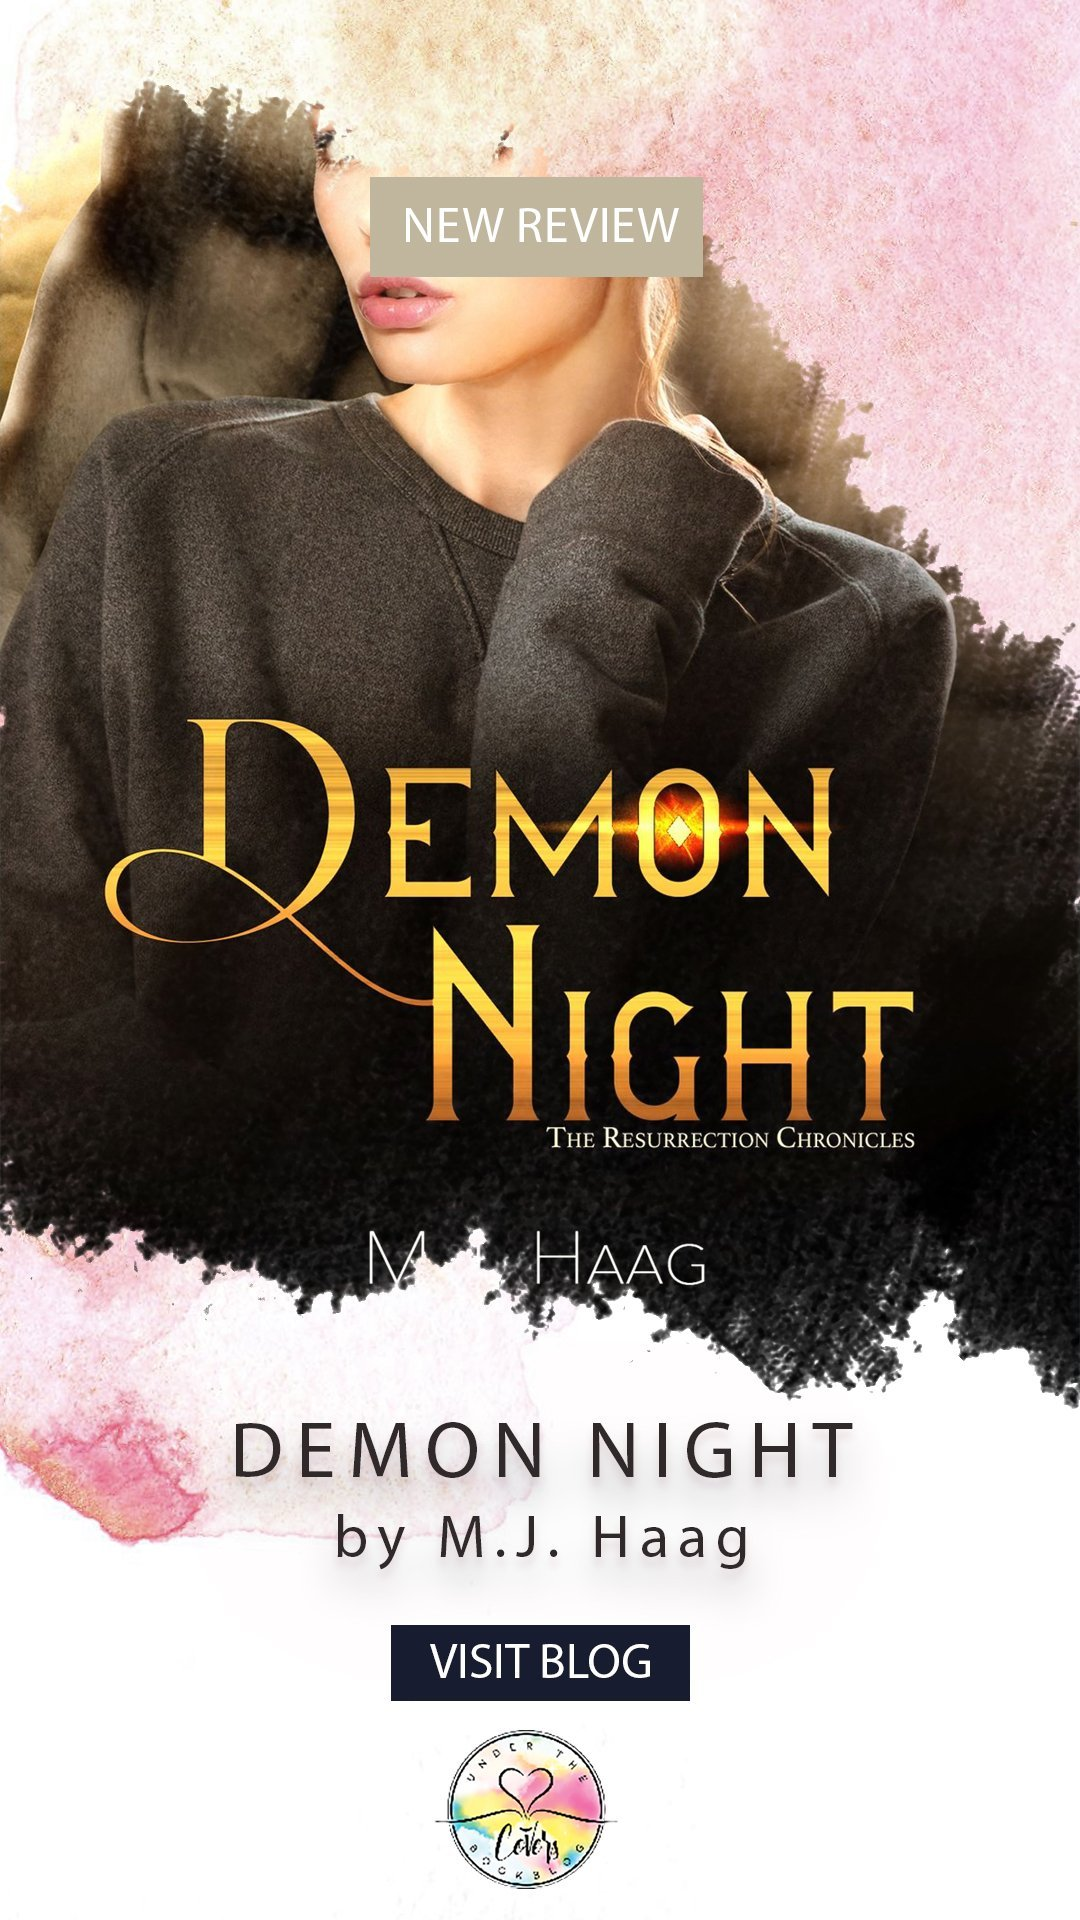 Review: Demon Night by M.J. Haag